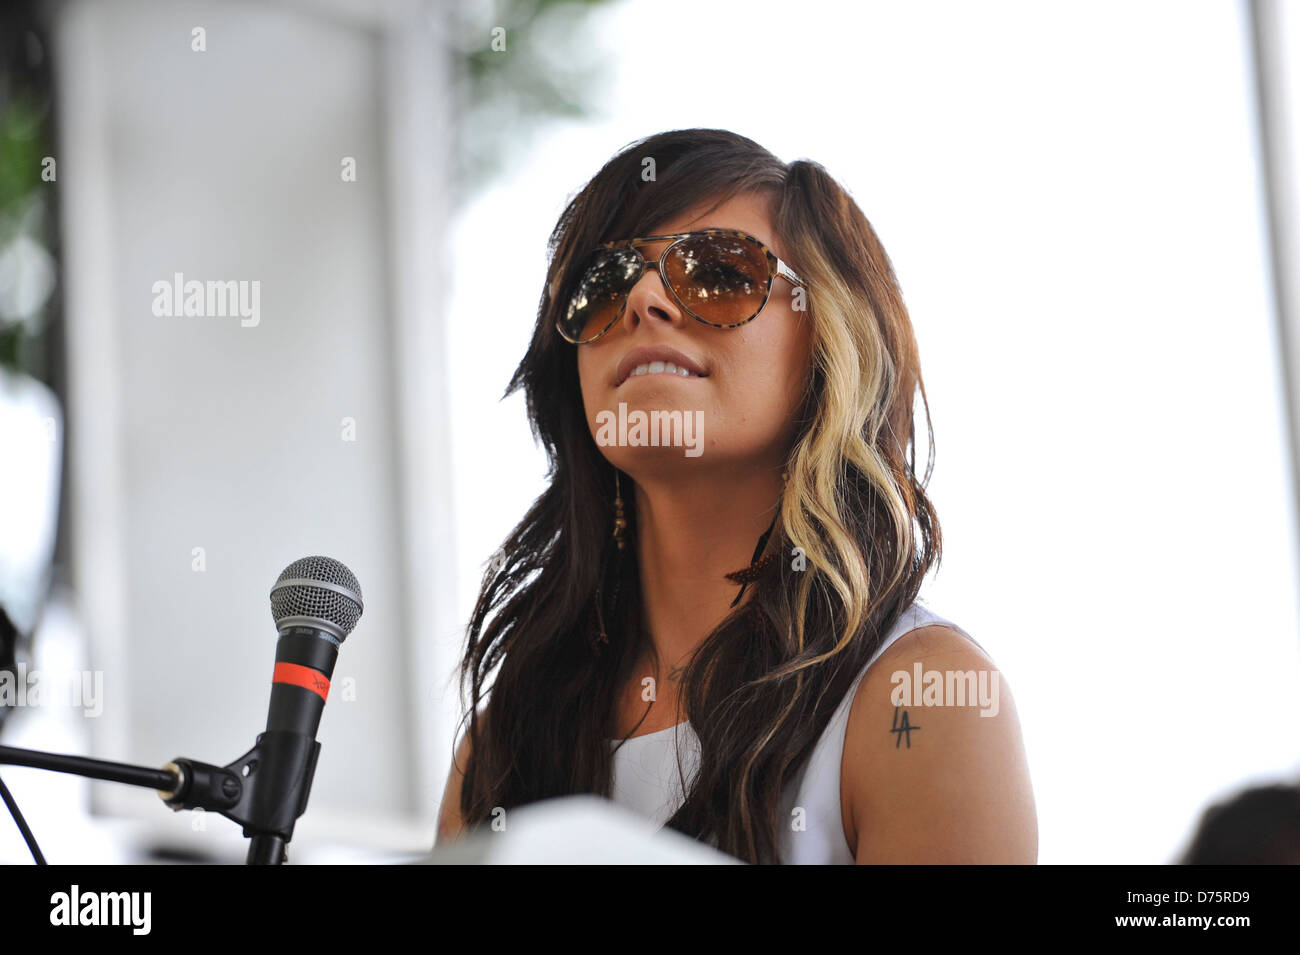 Christina Perri Lollapalooza Music Festival 2011 - Performances - Day 1 Chicago, Illinois - 05.08.11 - Stock Image